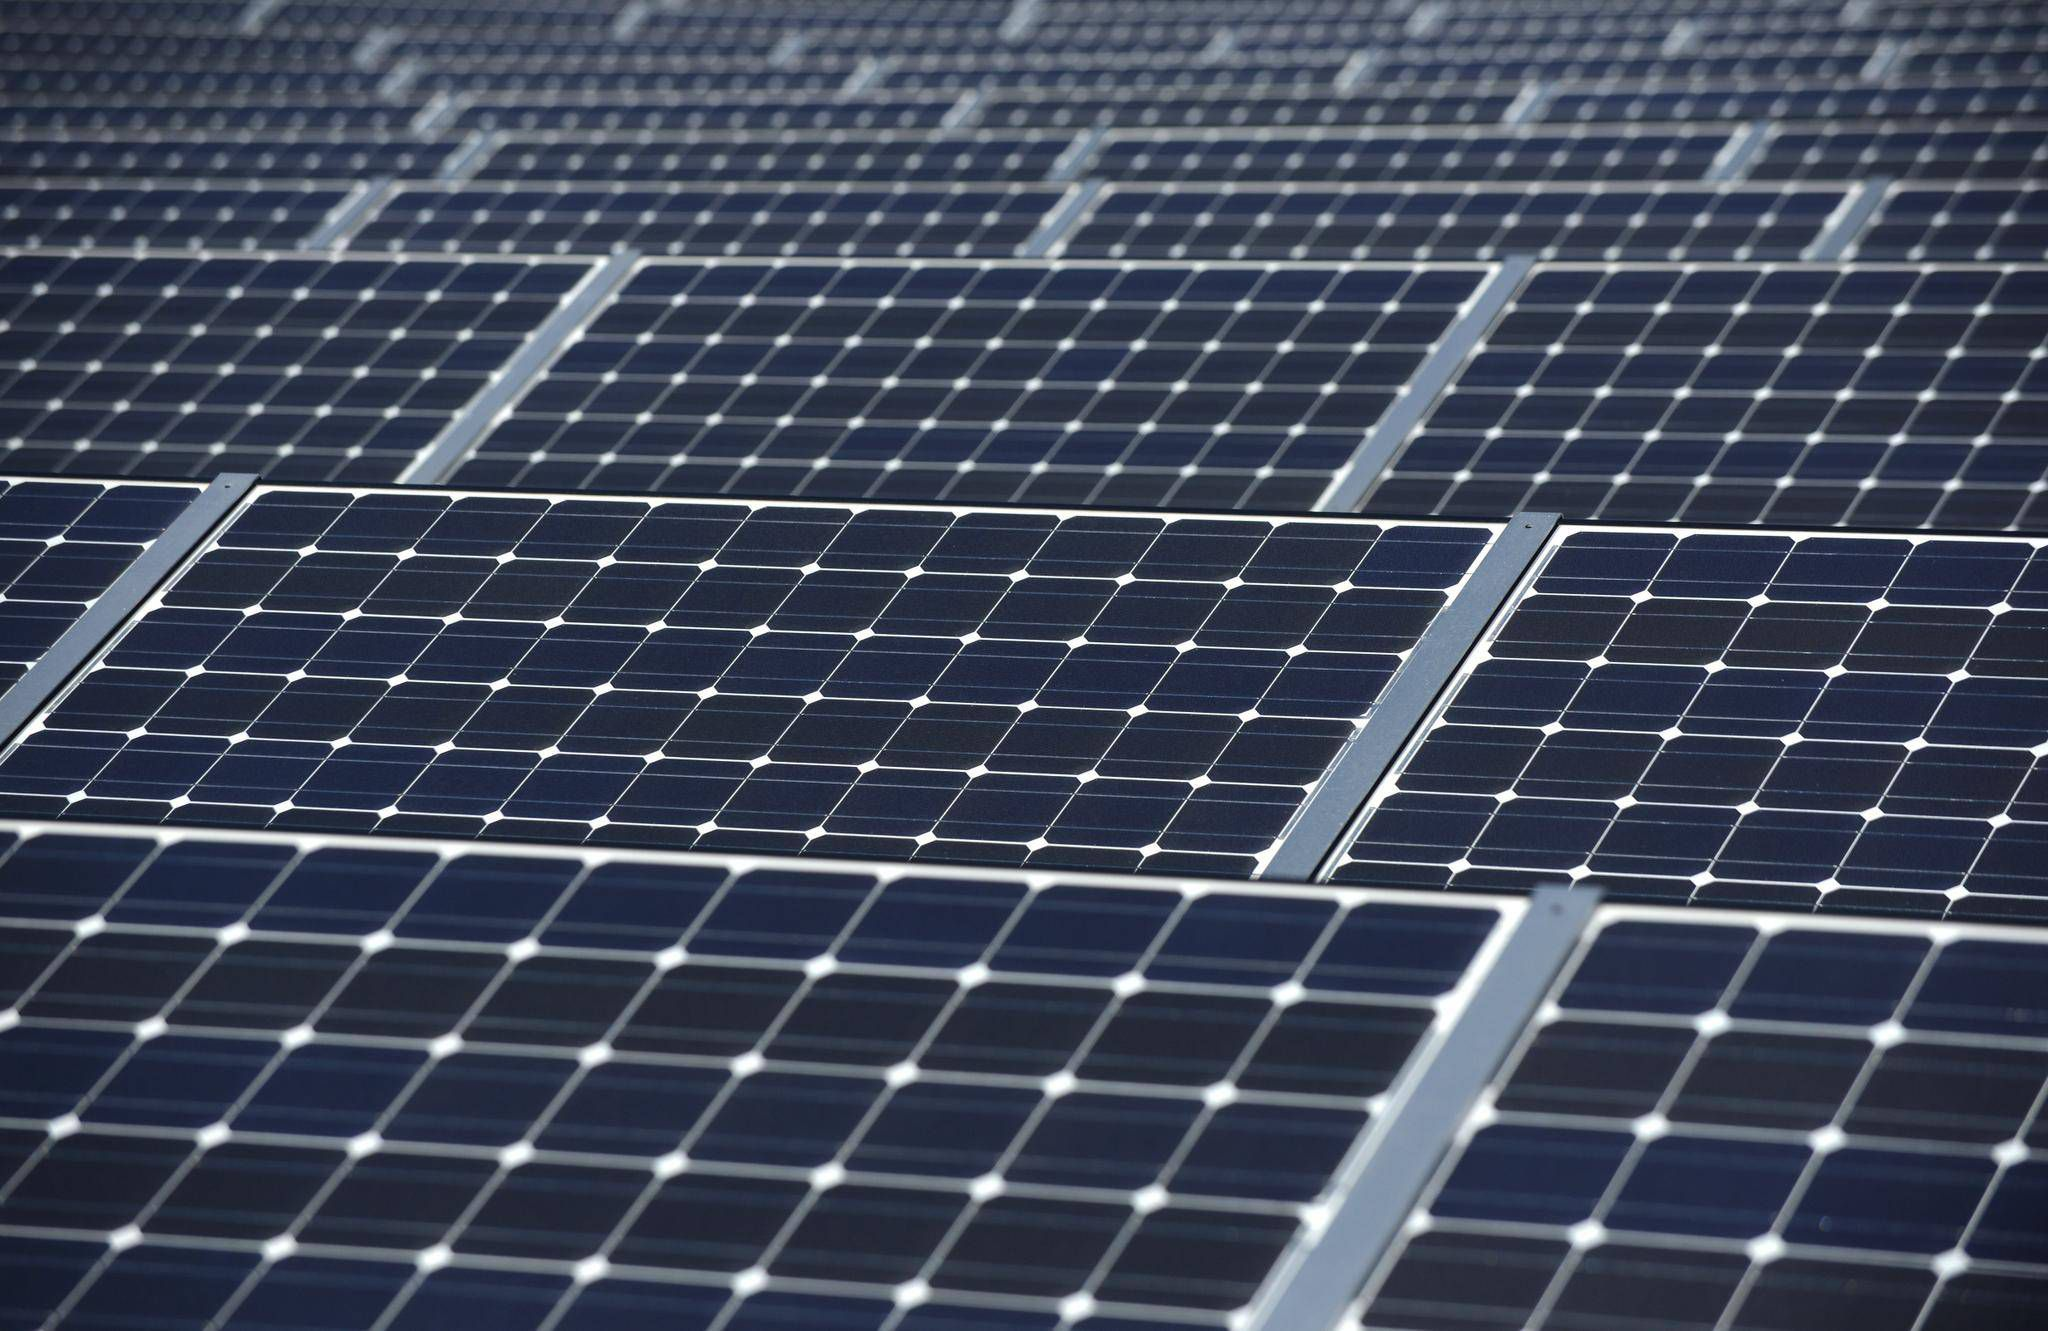 Ontario Homeowners To Reap Solar Benefits In 5 Years Association Ford Panel Roof Says The Globe And Mail